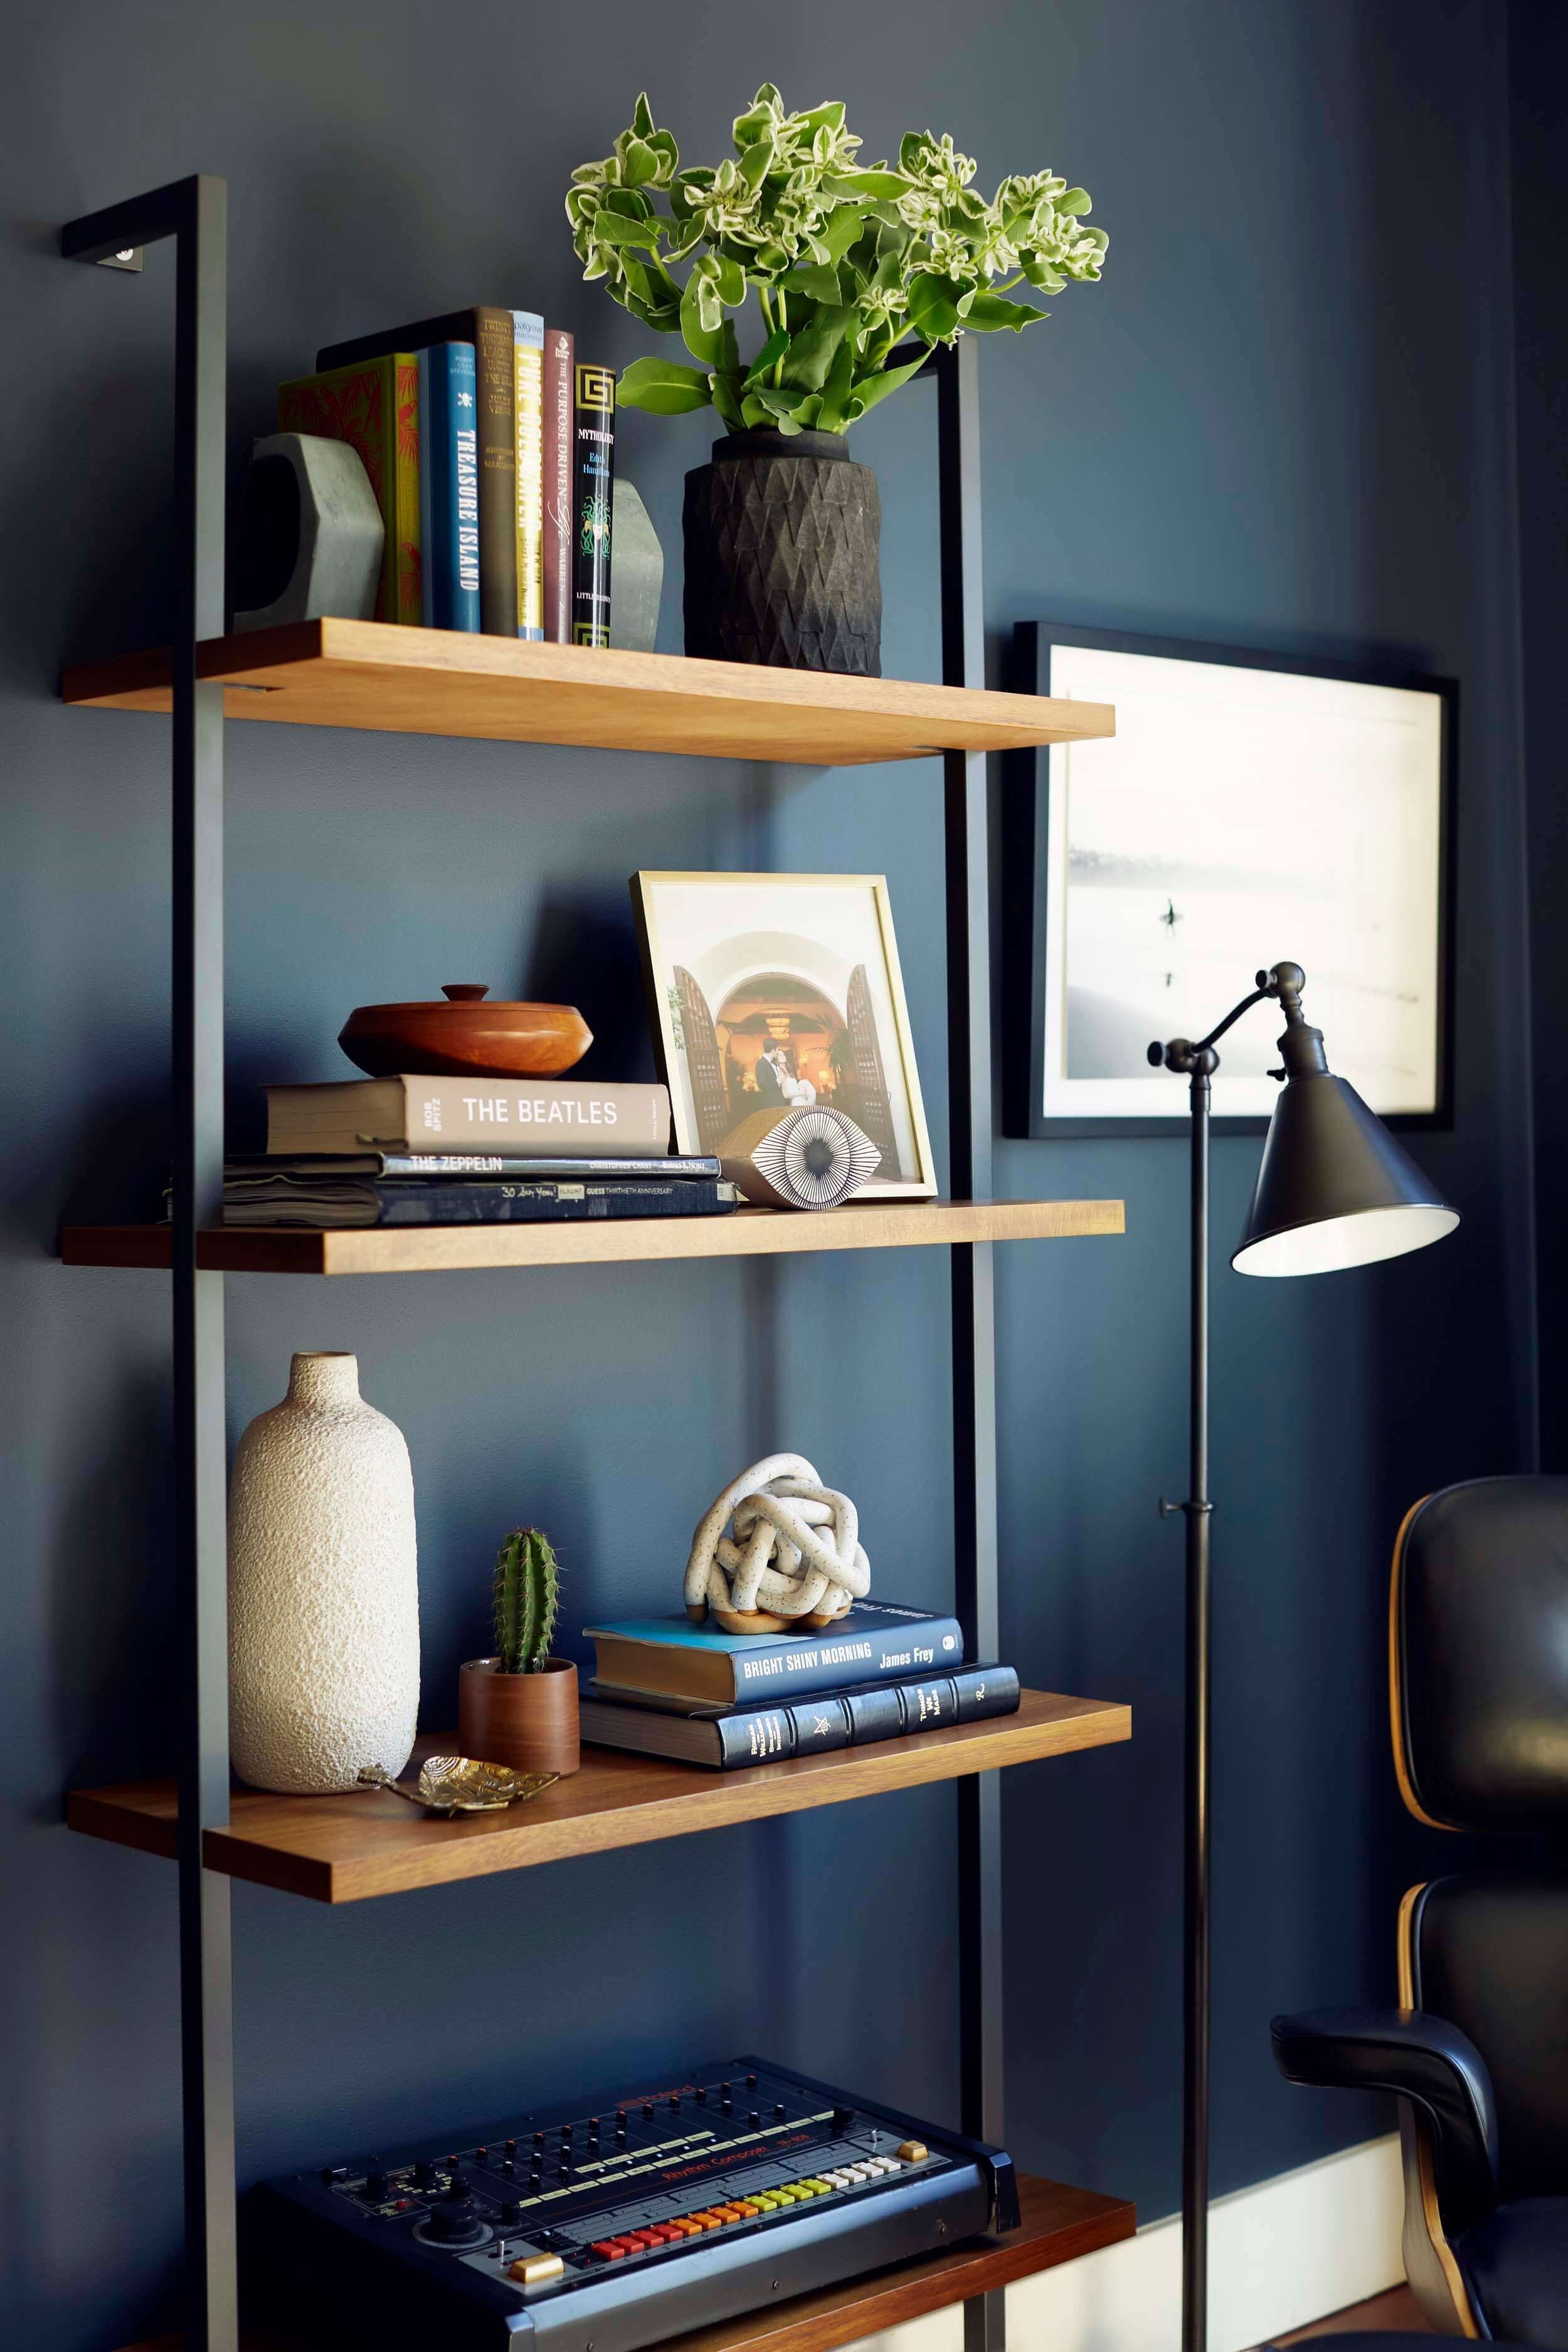 Modern Living Room Decorating Ideas Storage Moody Mid Century Home Fice Shop the Look